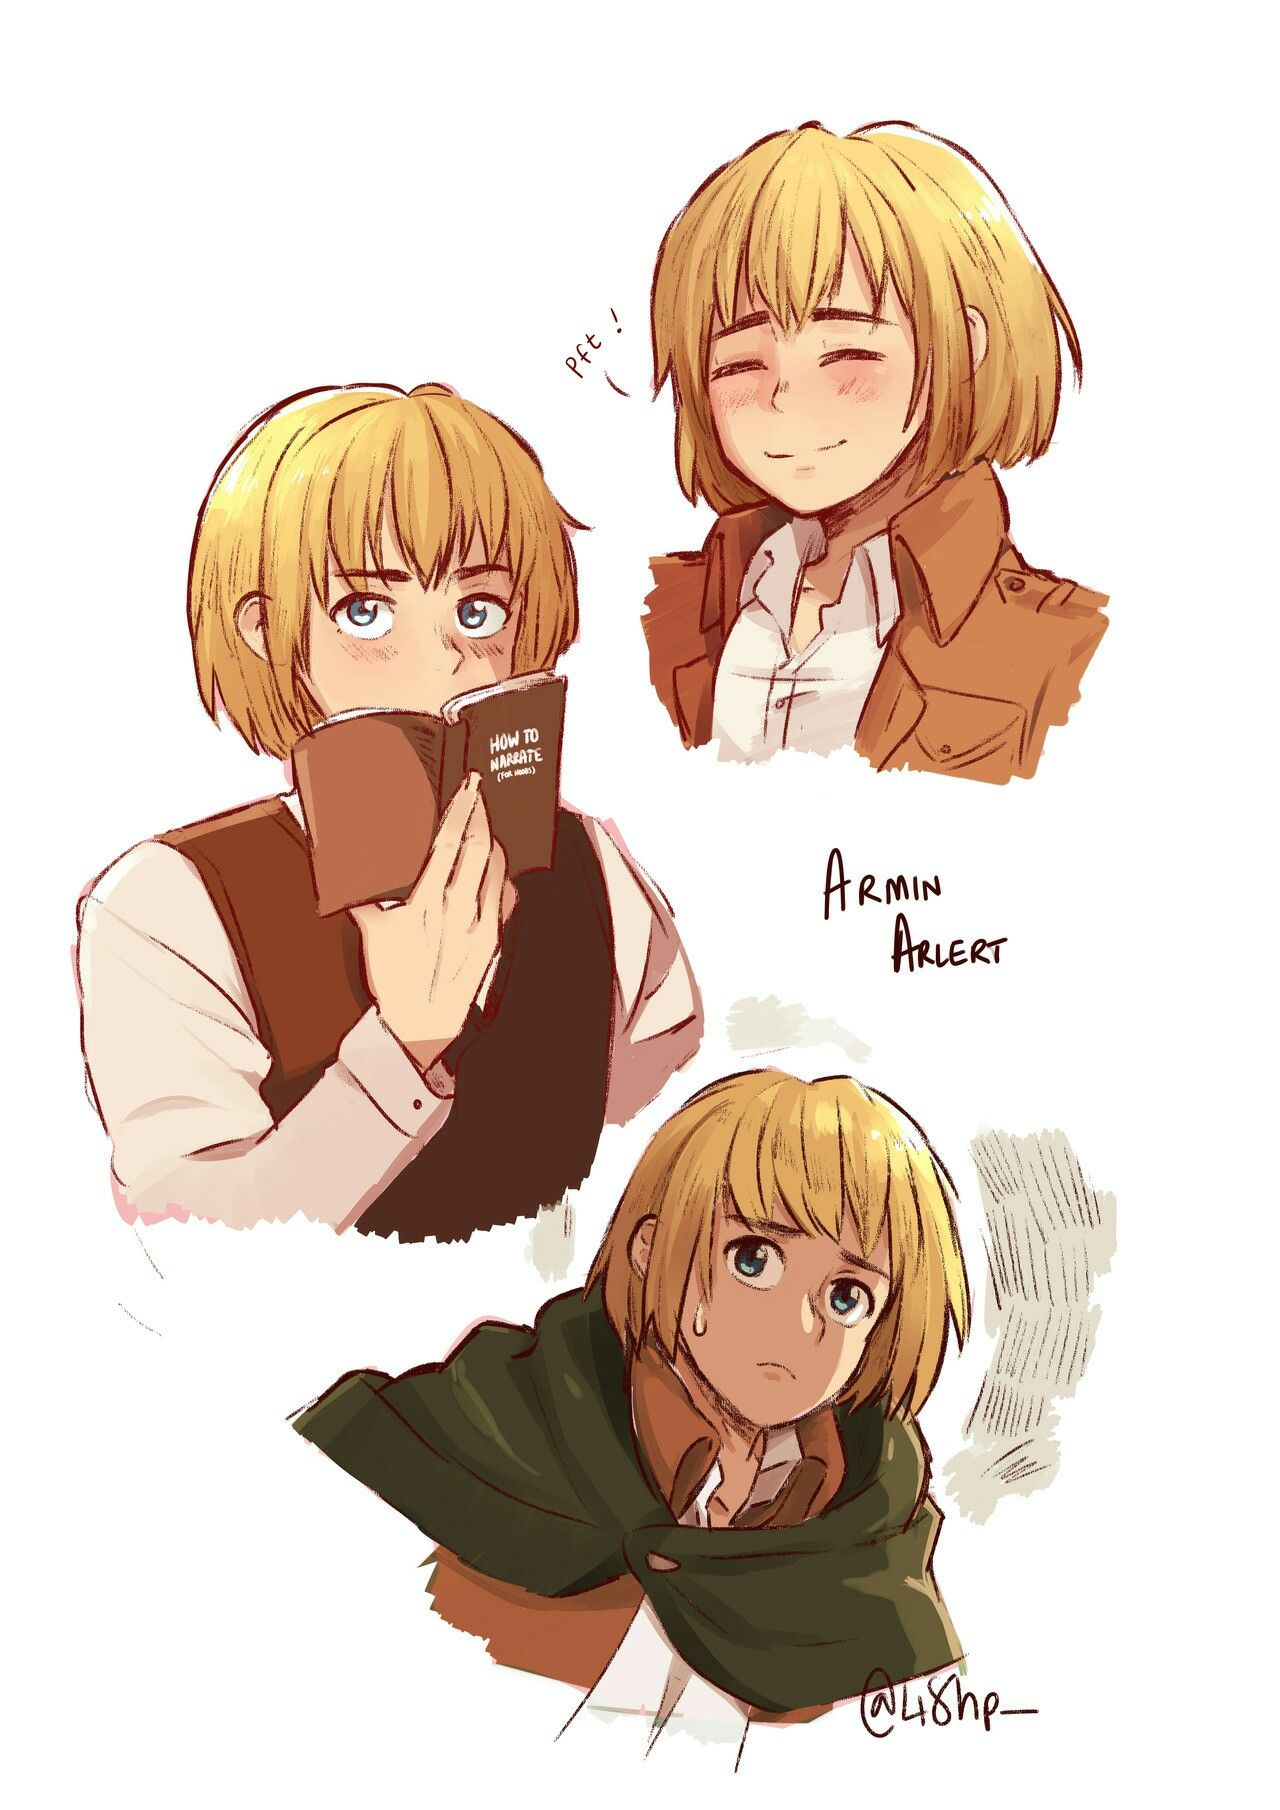 Armin Arlert Aot Attack On Titan Art Attack On Titan